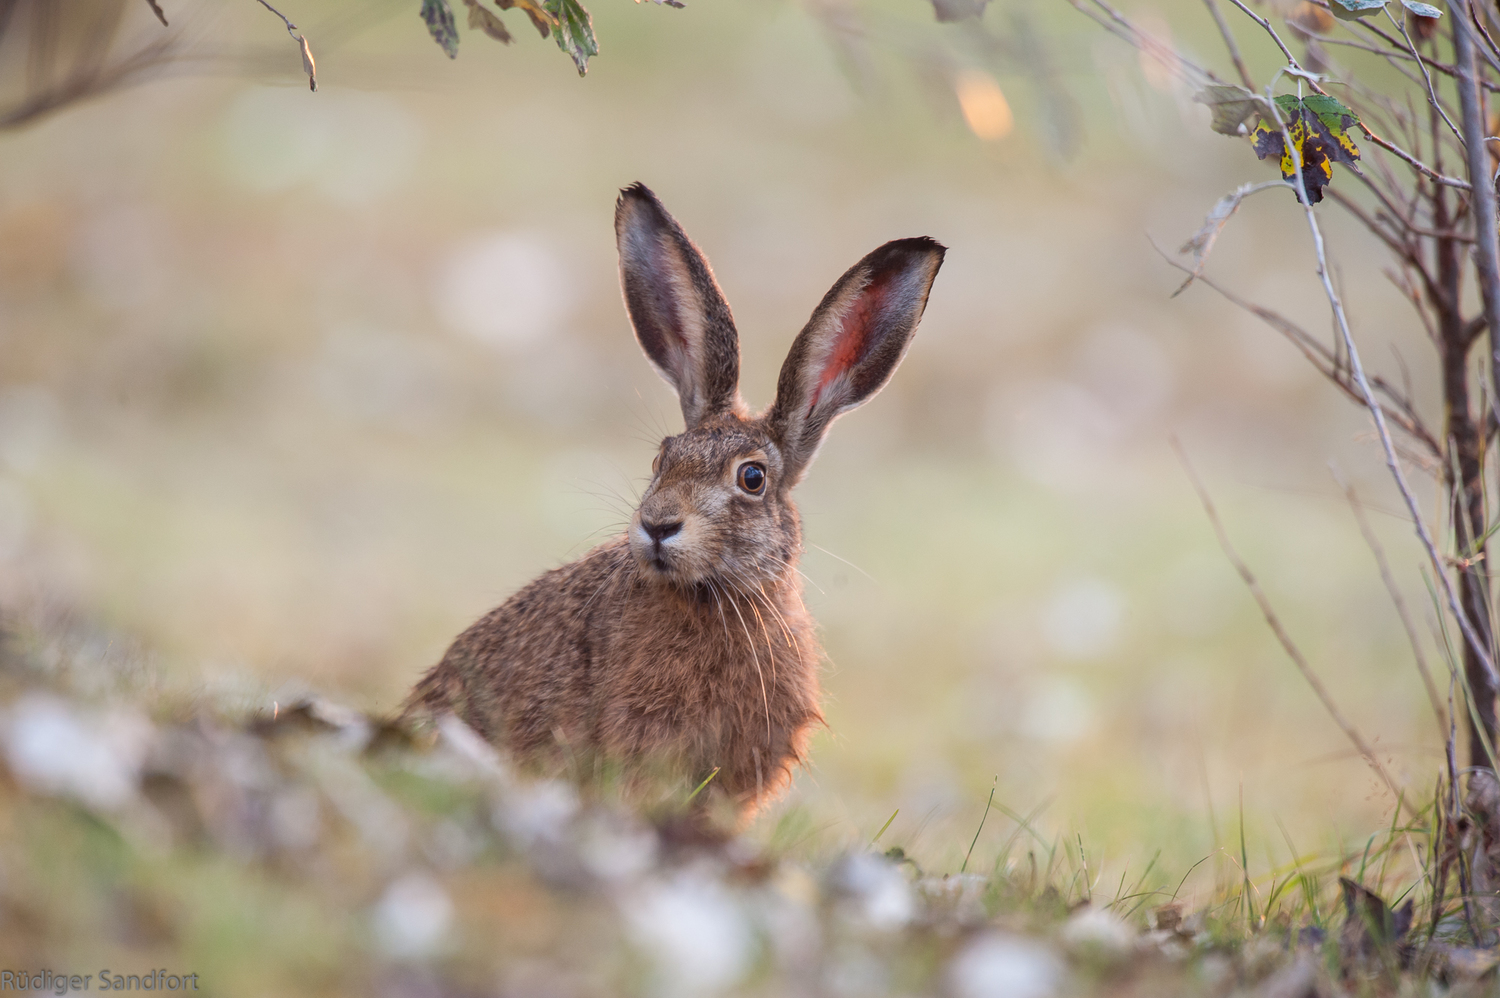 Brown hare / Feldhase